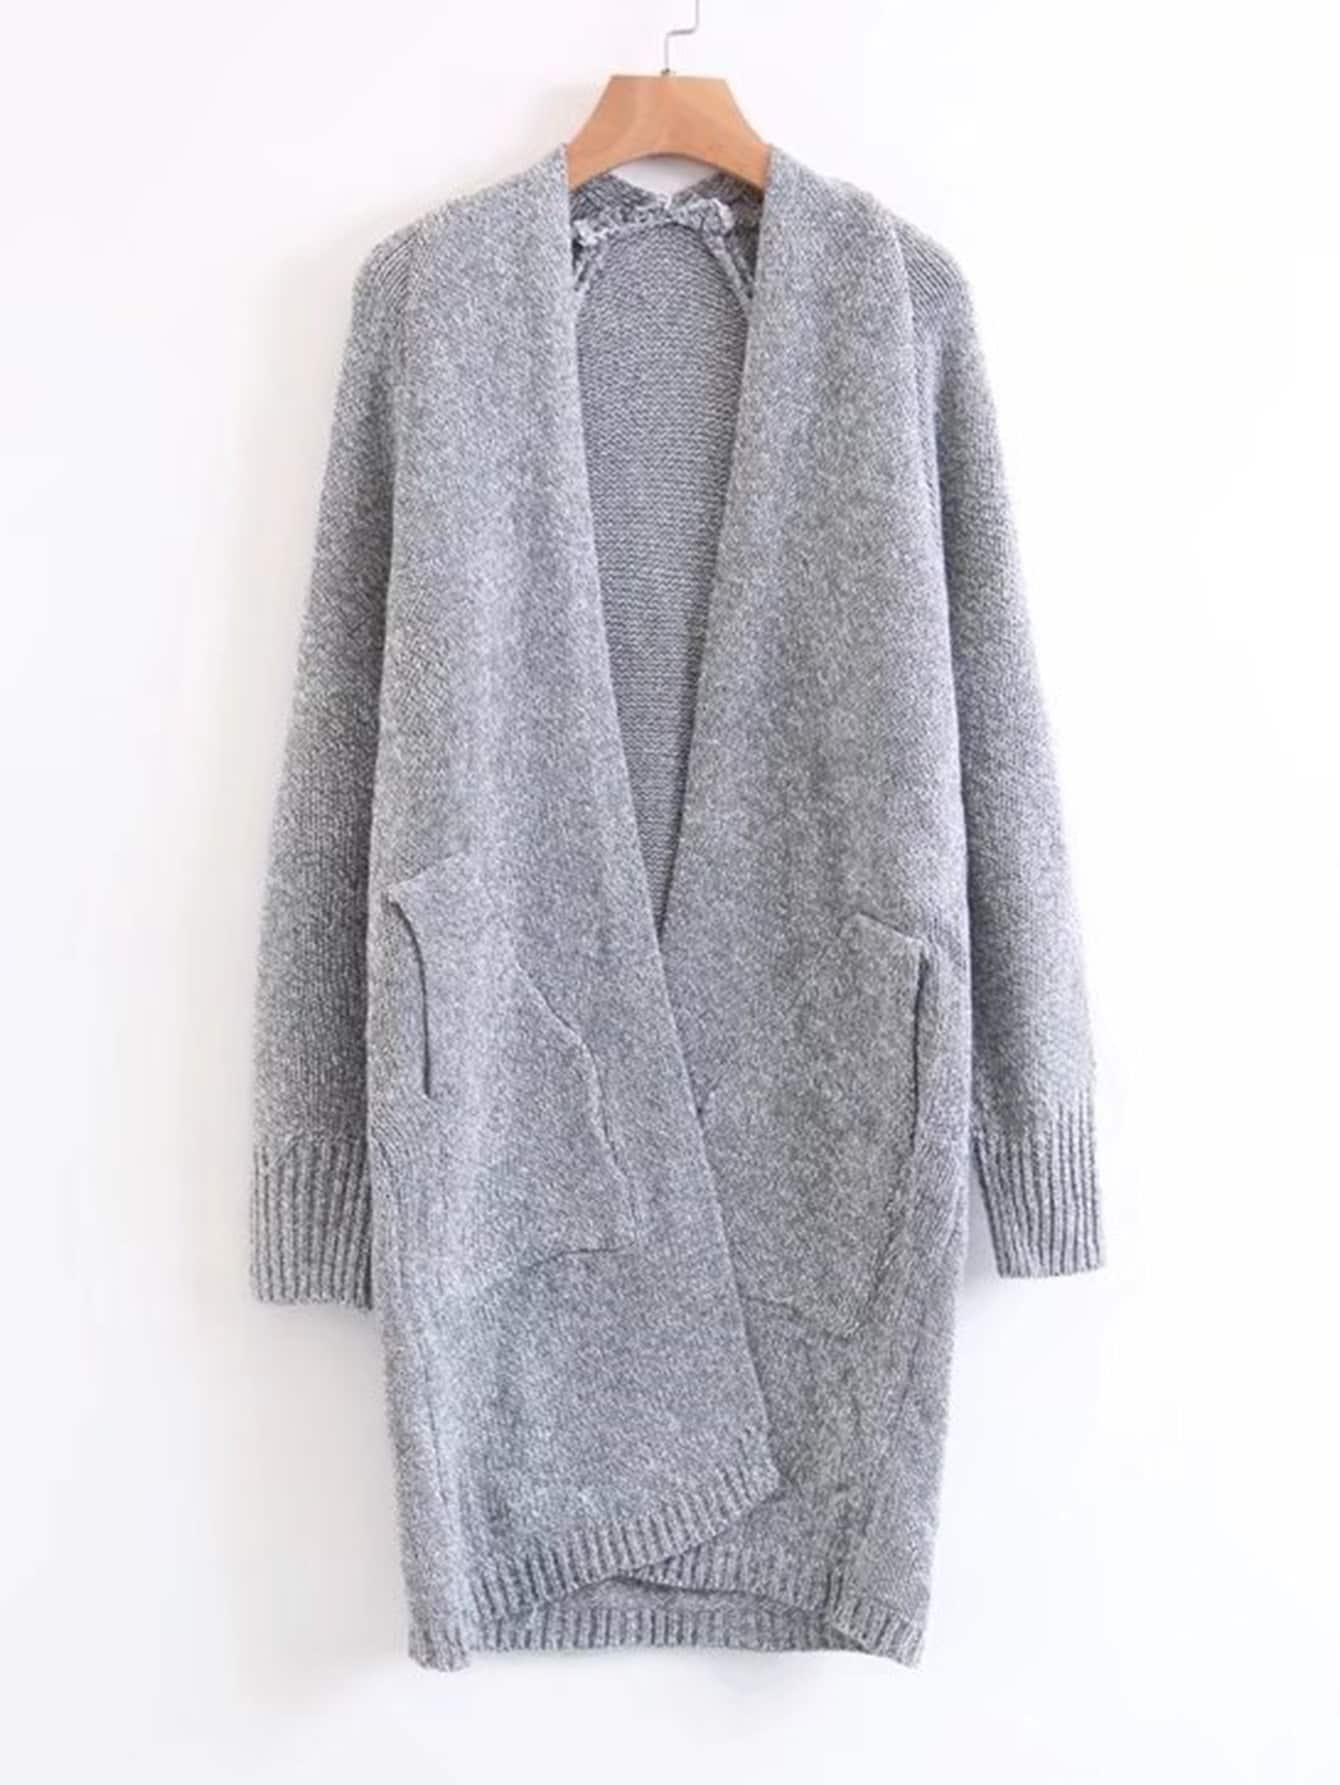 Ribbed Detail Open Front Long Cardigan sweater170829201